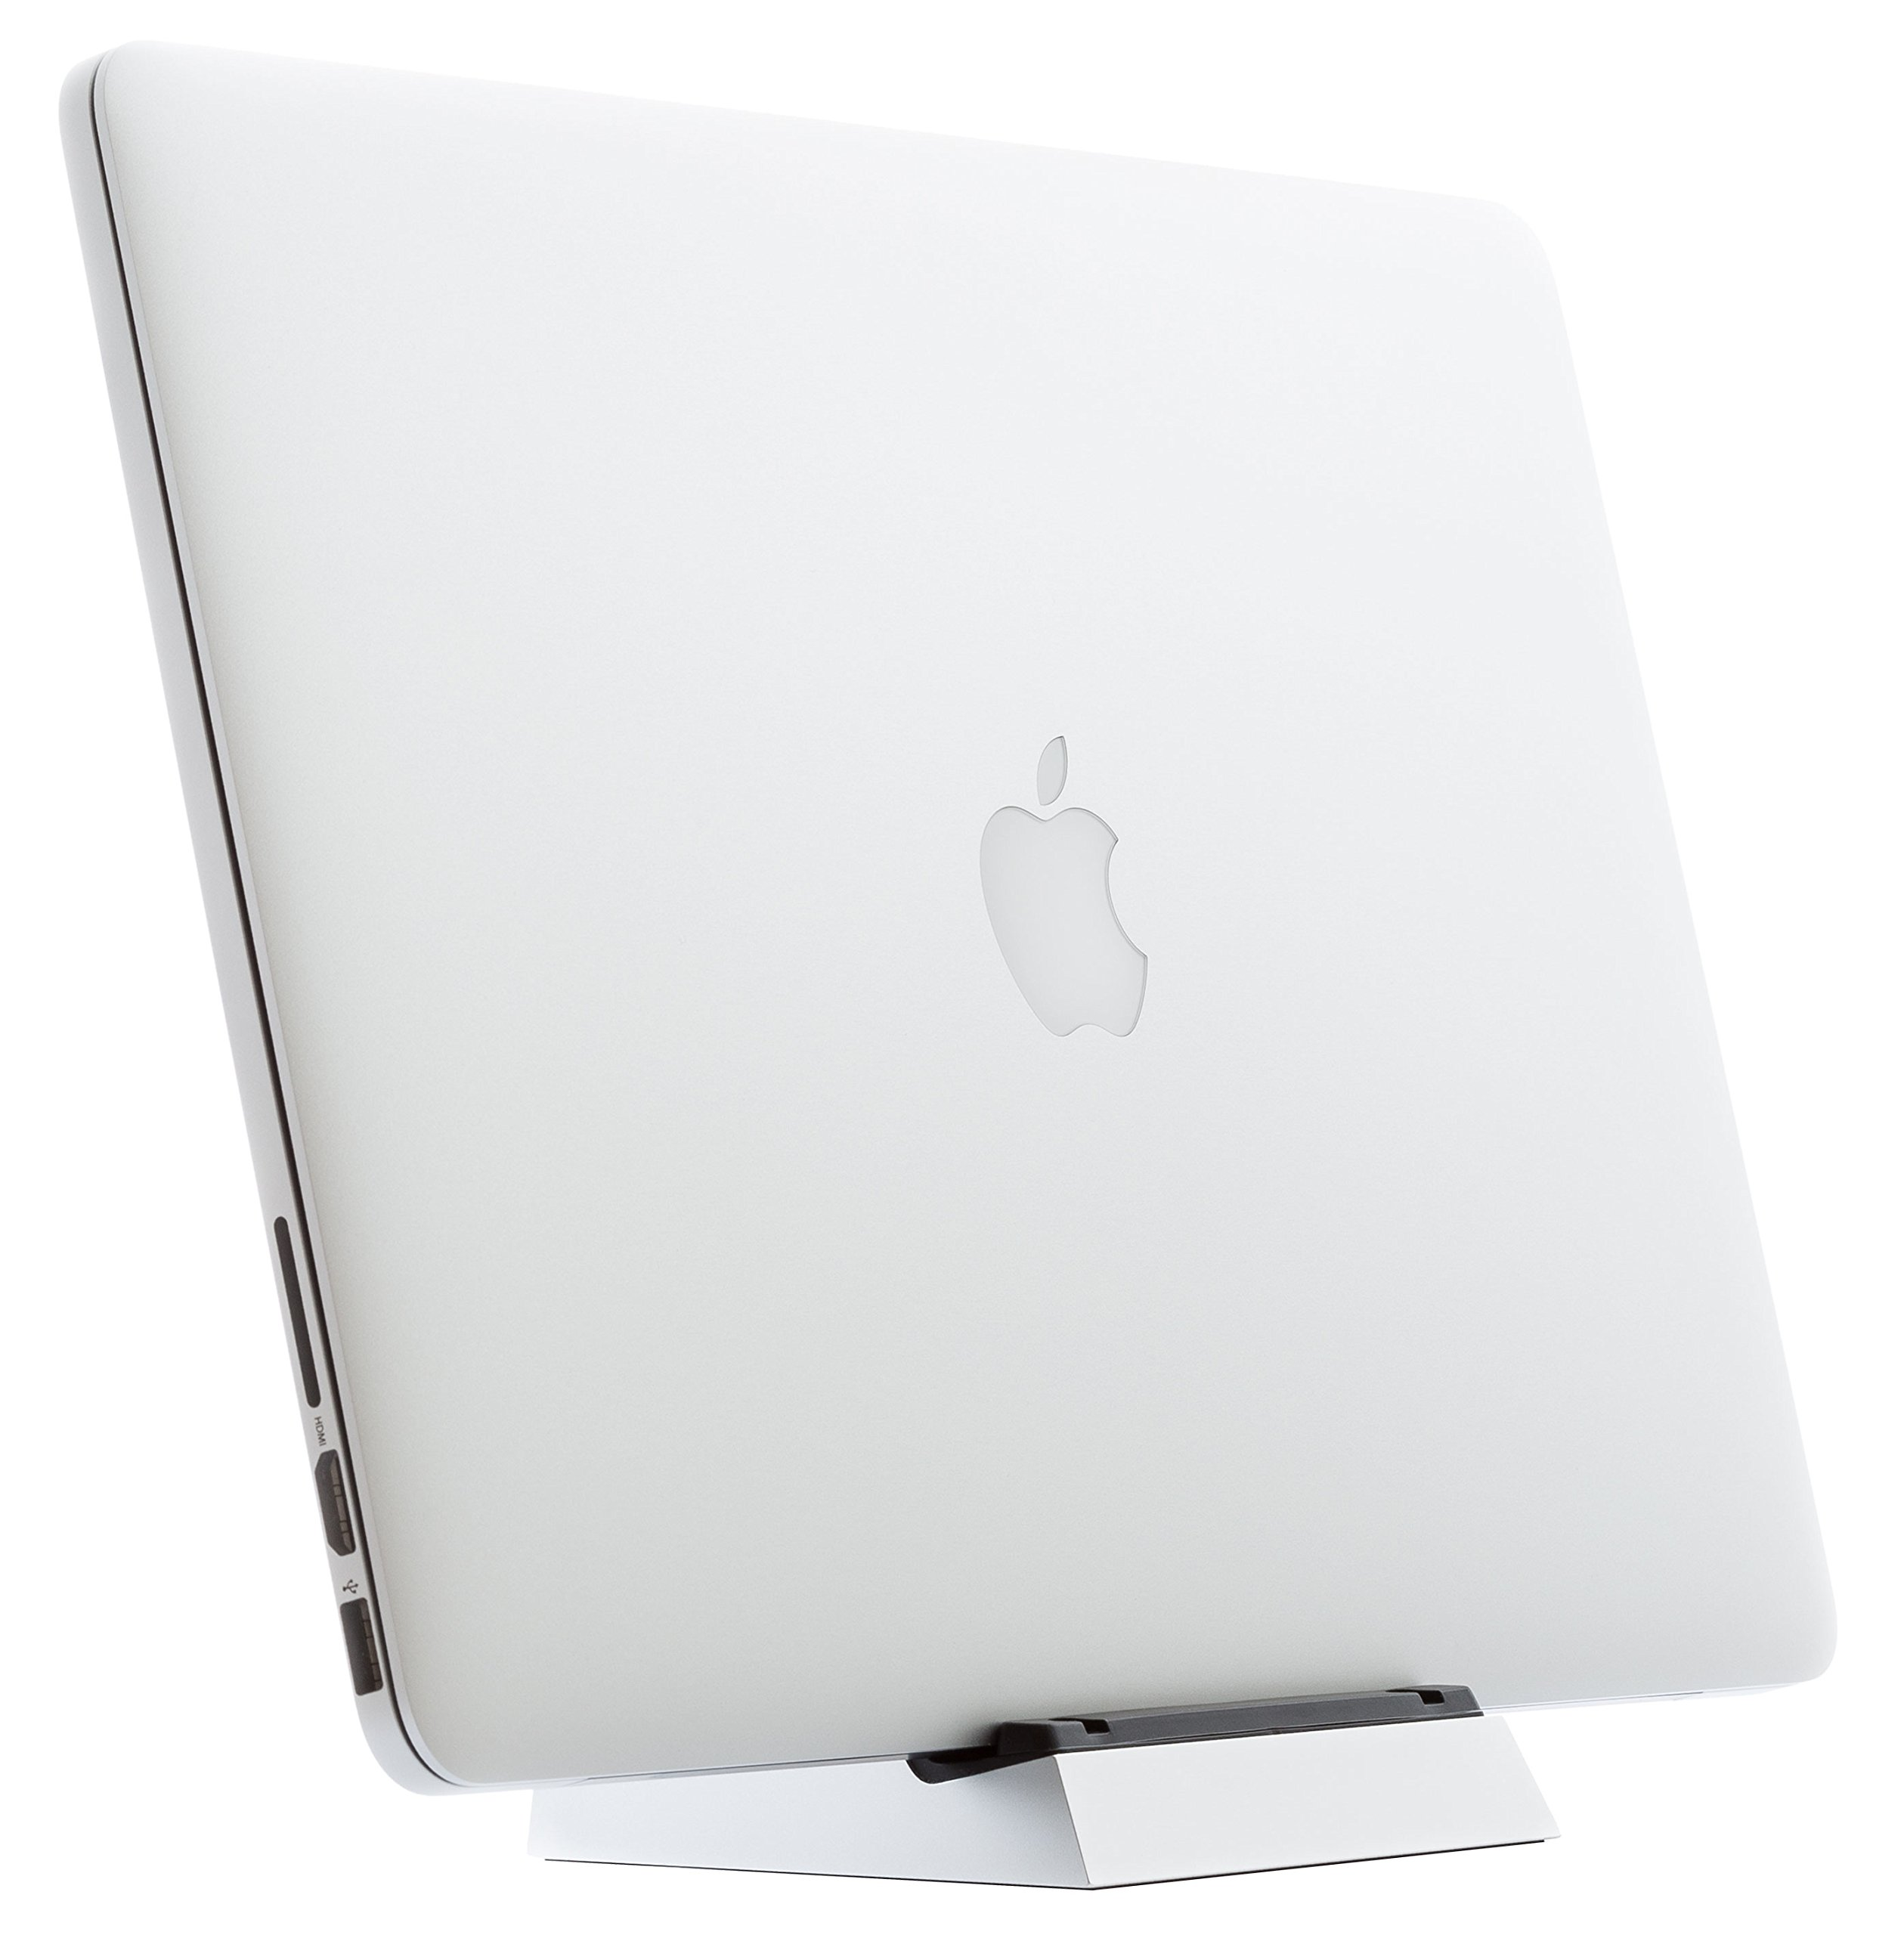 SVALT D2 High-Performance Cooling Dock for Apple Retina MacBook Pro and MacBook Air laptops by SVALT (Image #2)